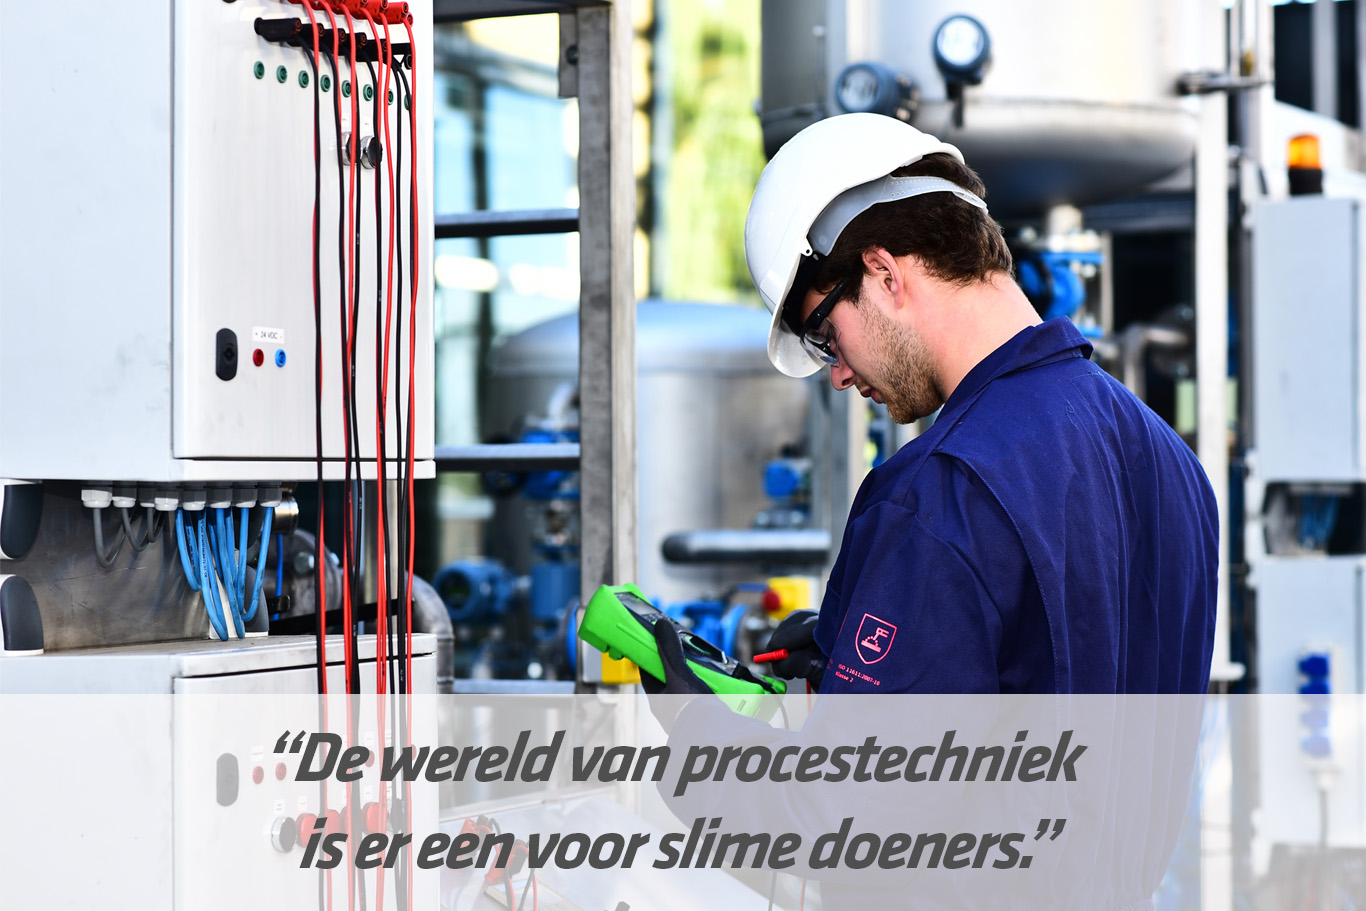 Mbo-opleiding Operationeel technicus | STC mbo college Rotterdam